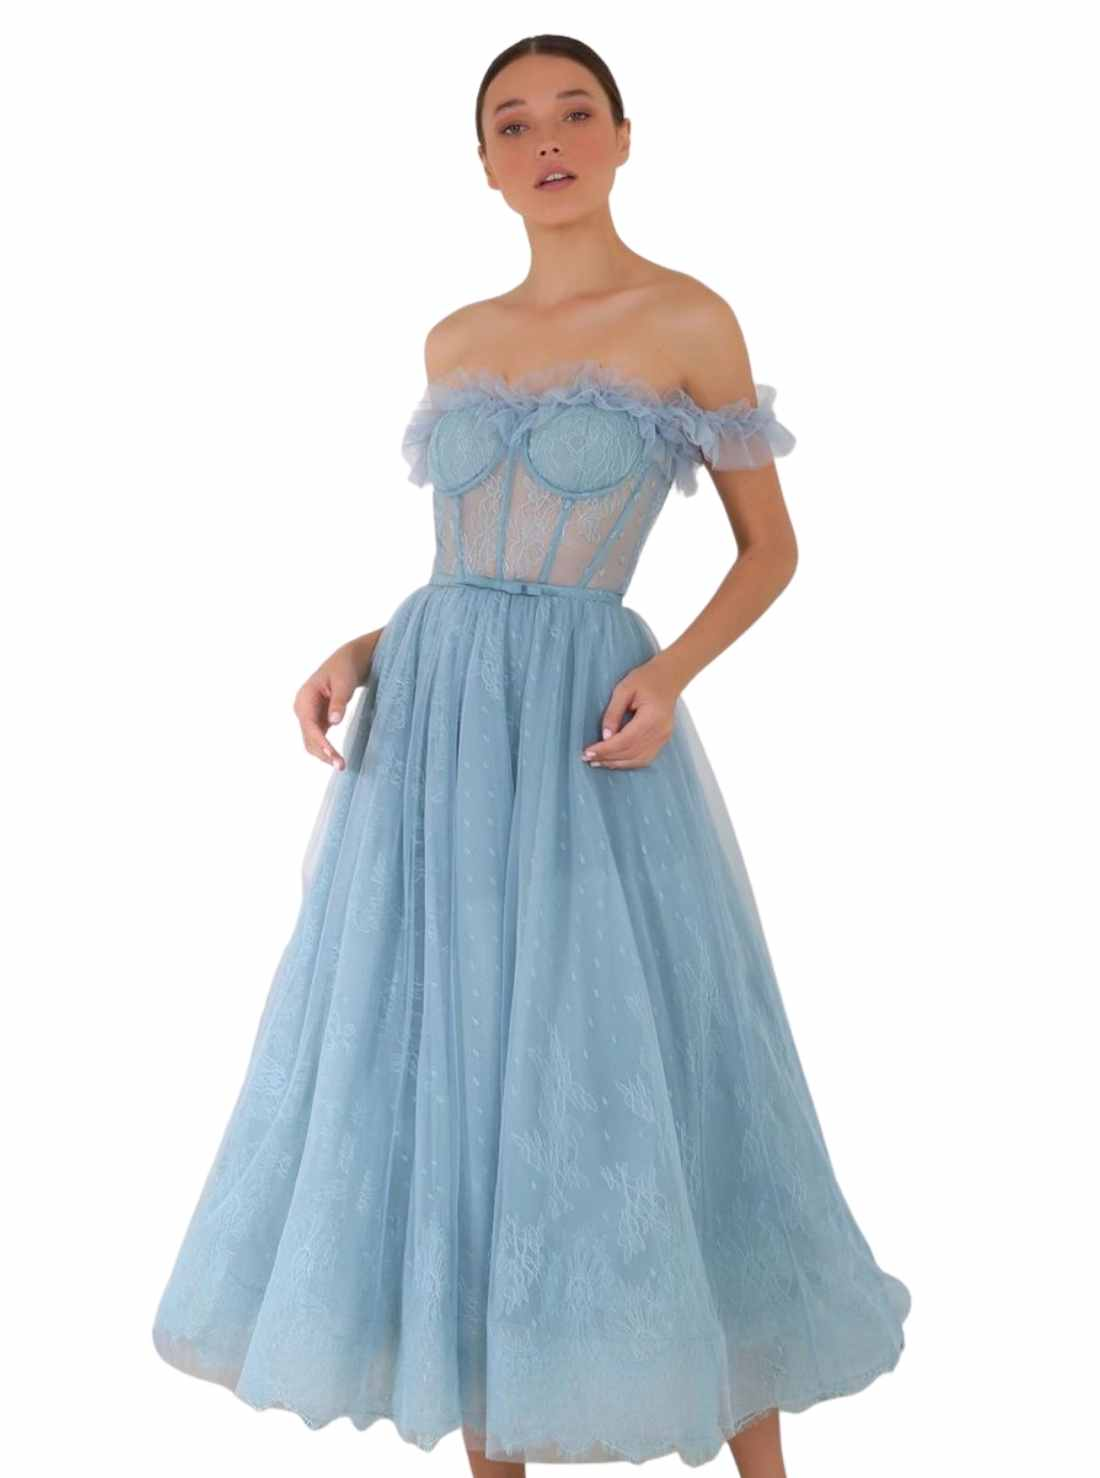 Blue Corset Dress with Lace and Tulle Details